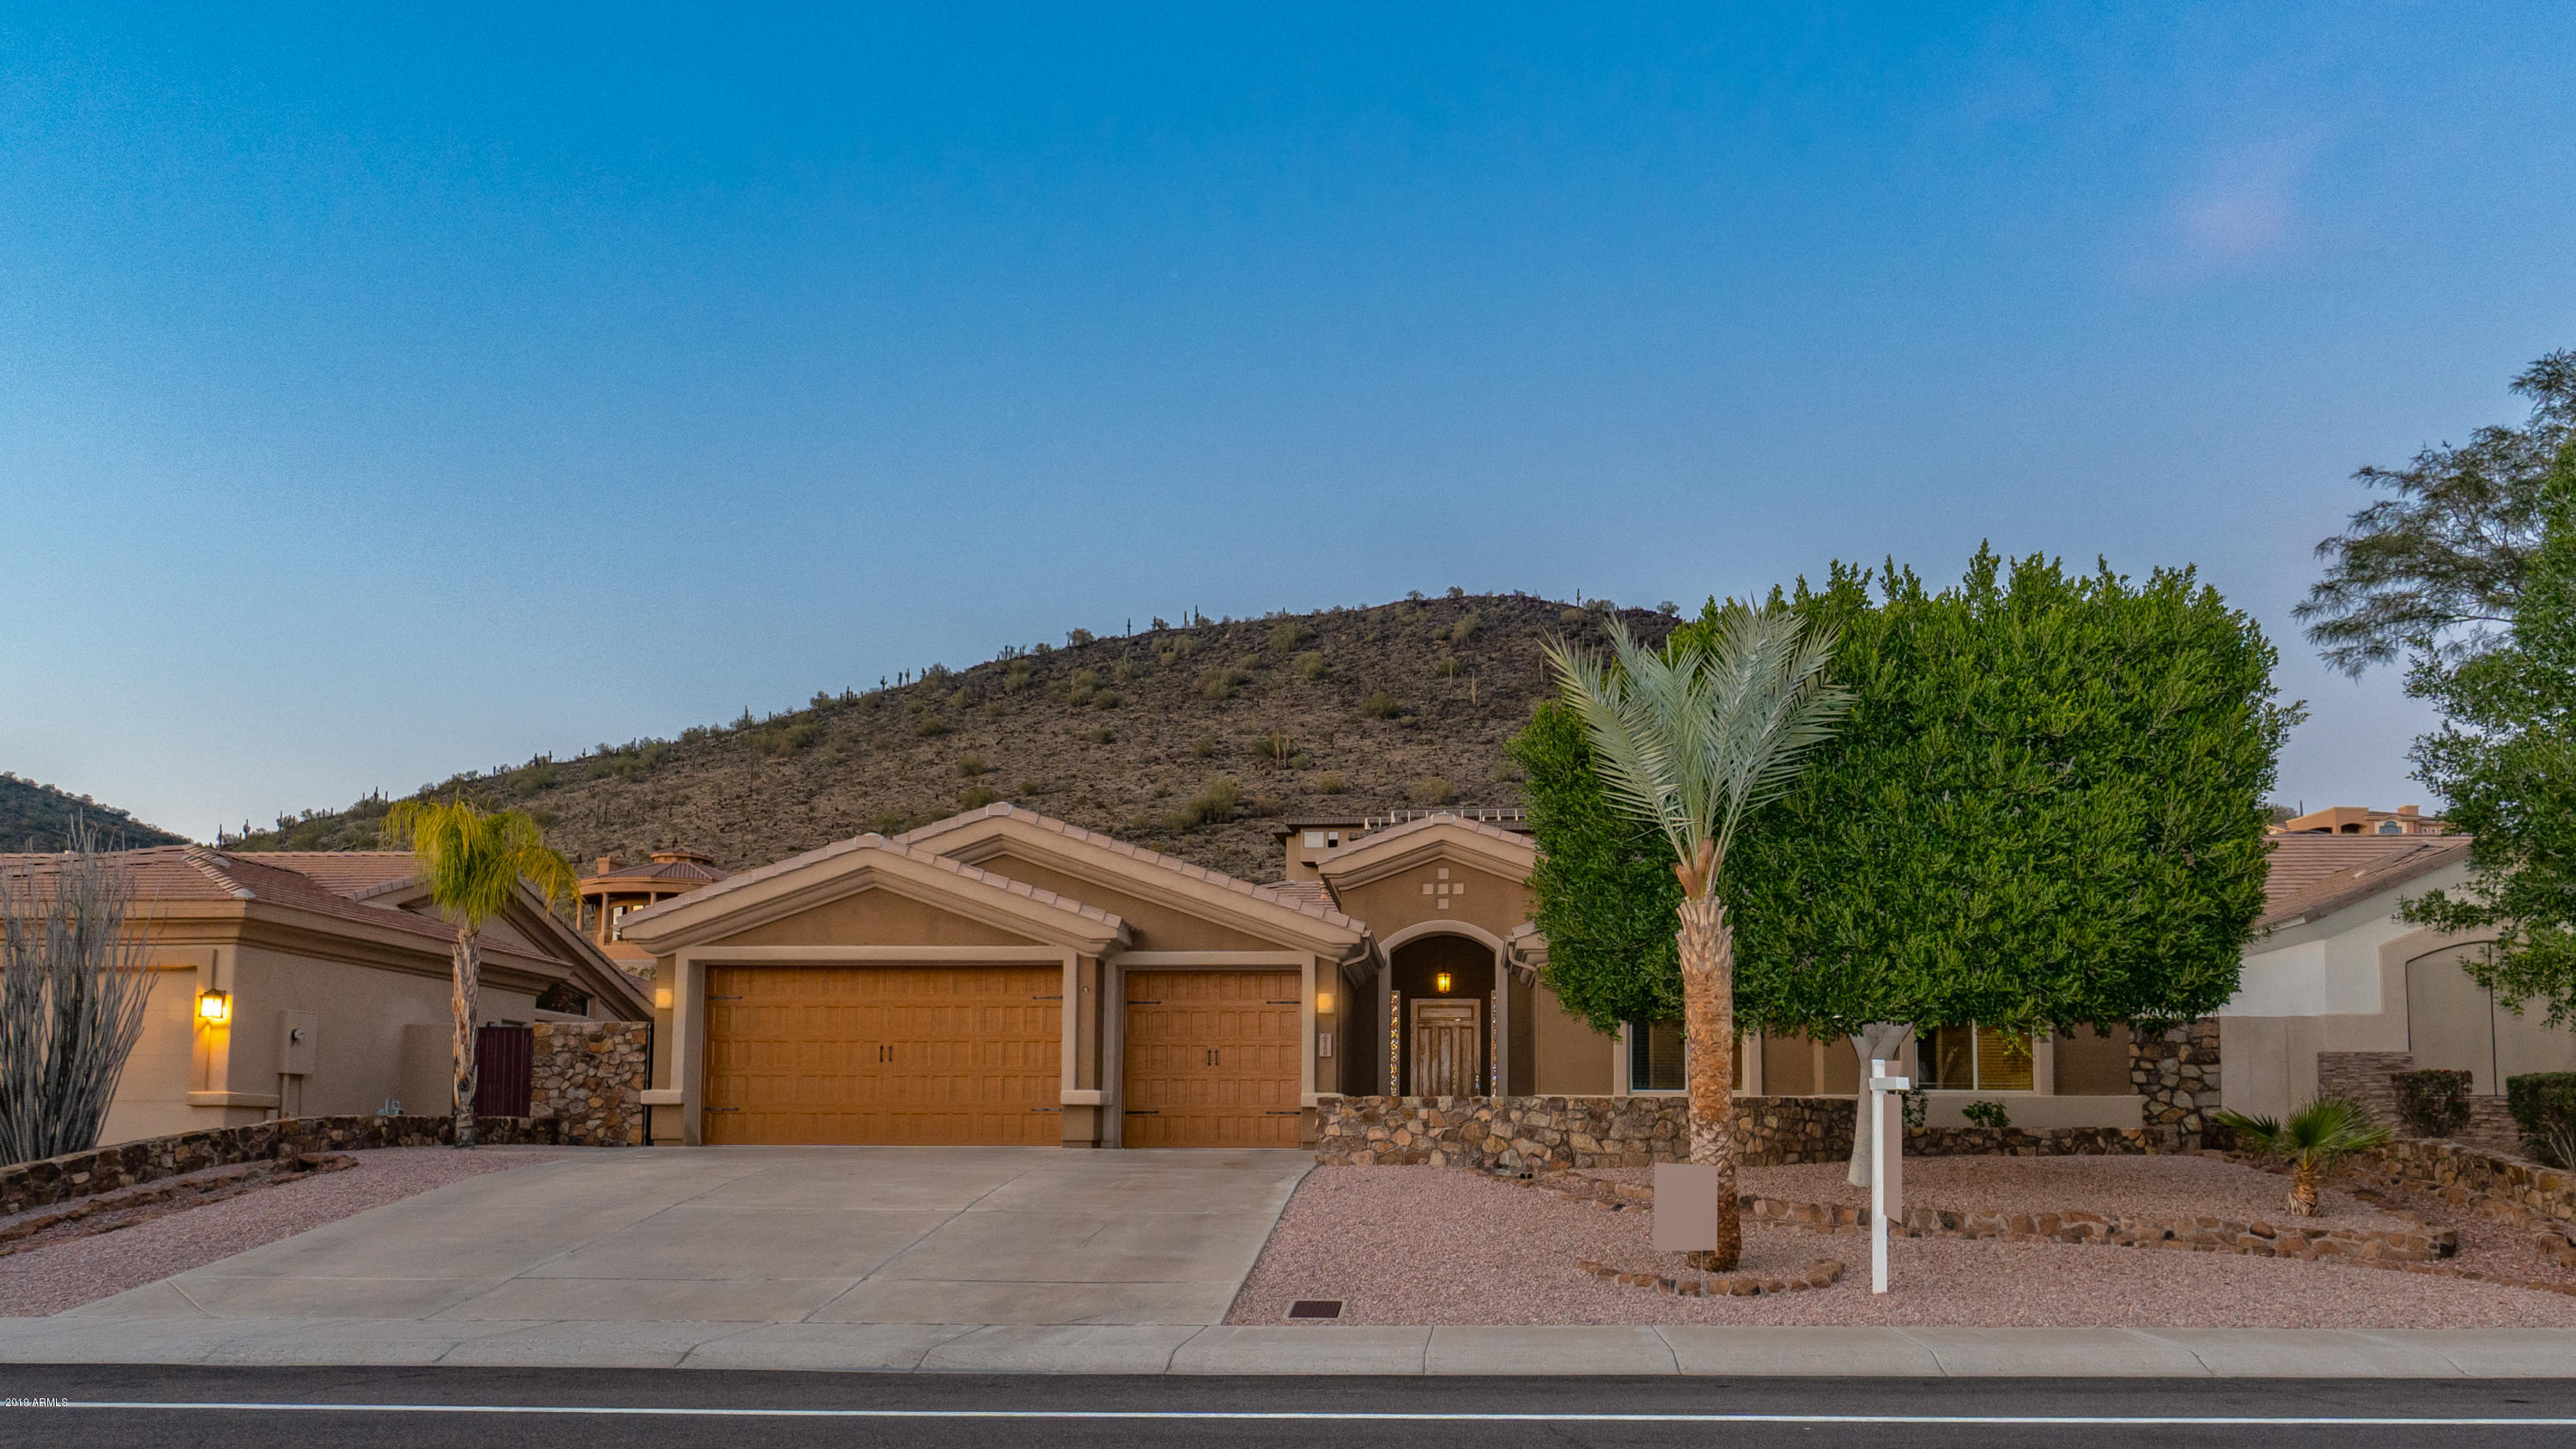 Photo of 5268 W MELINDA Lane, Glendale, AZ 85308